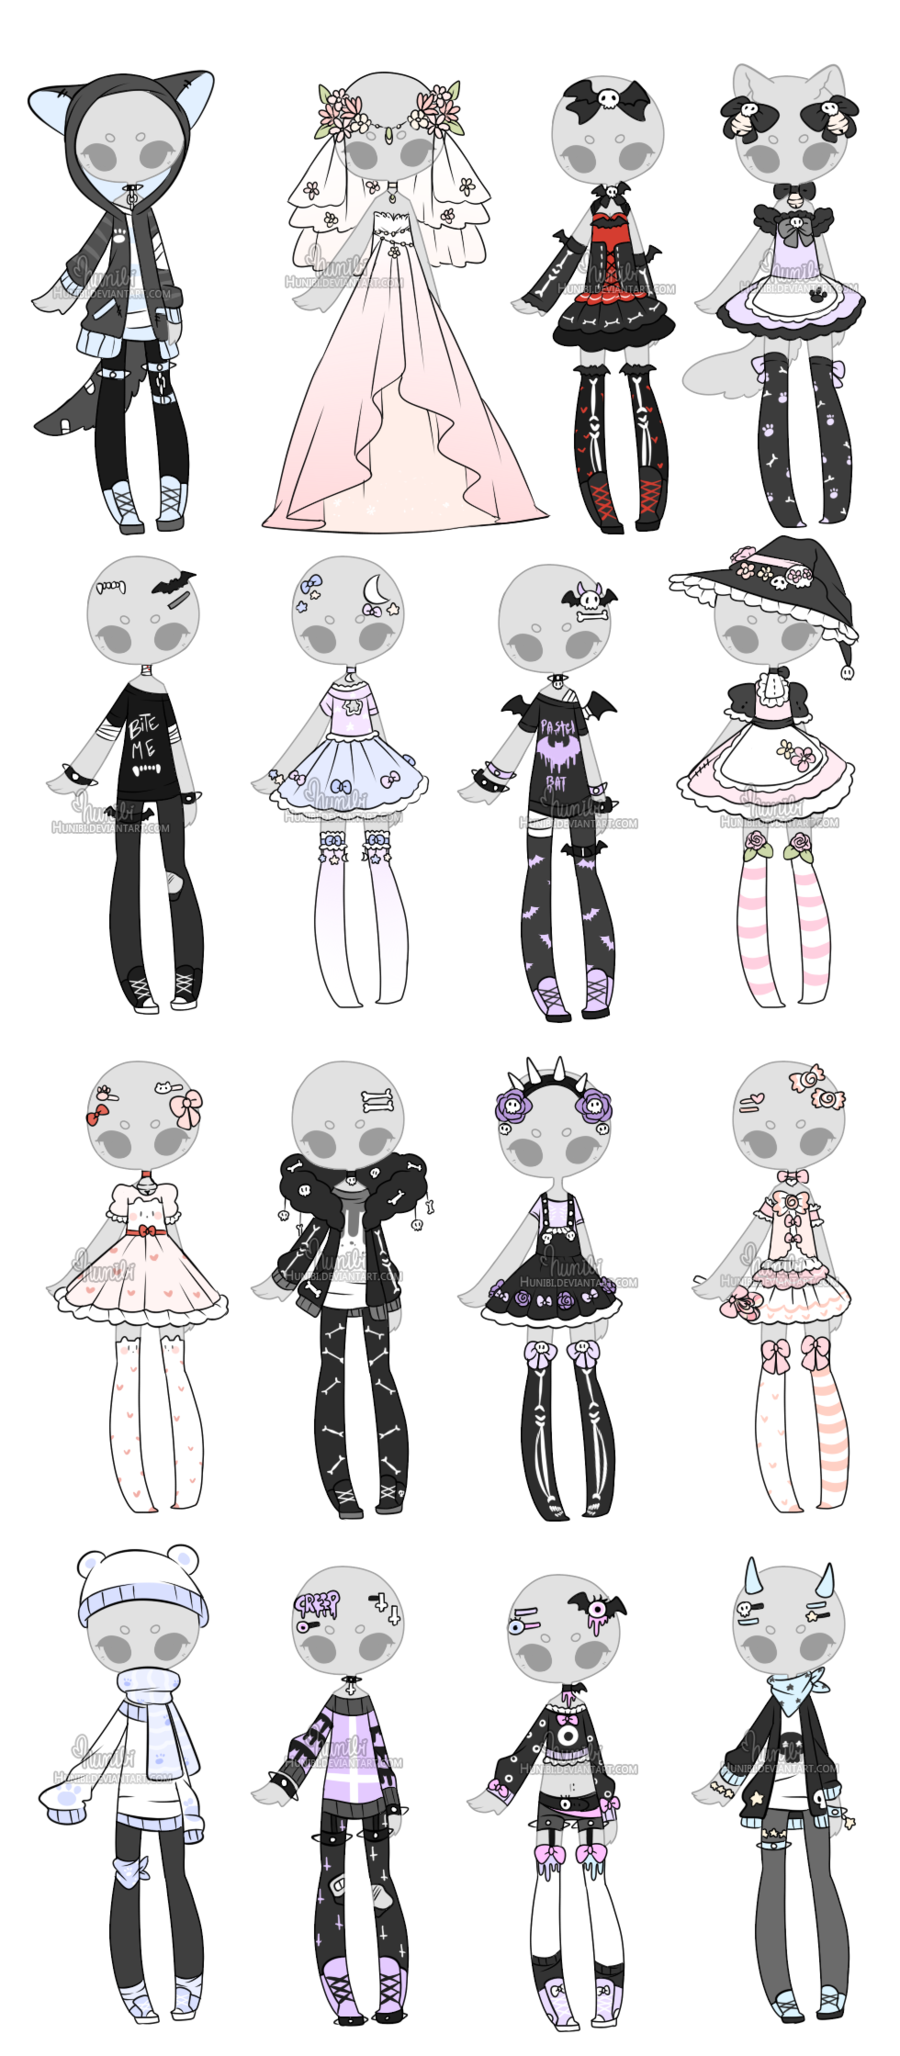 Maid drawing reference. Outfit adoptable mix closed